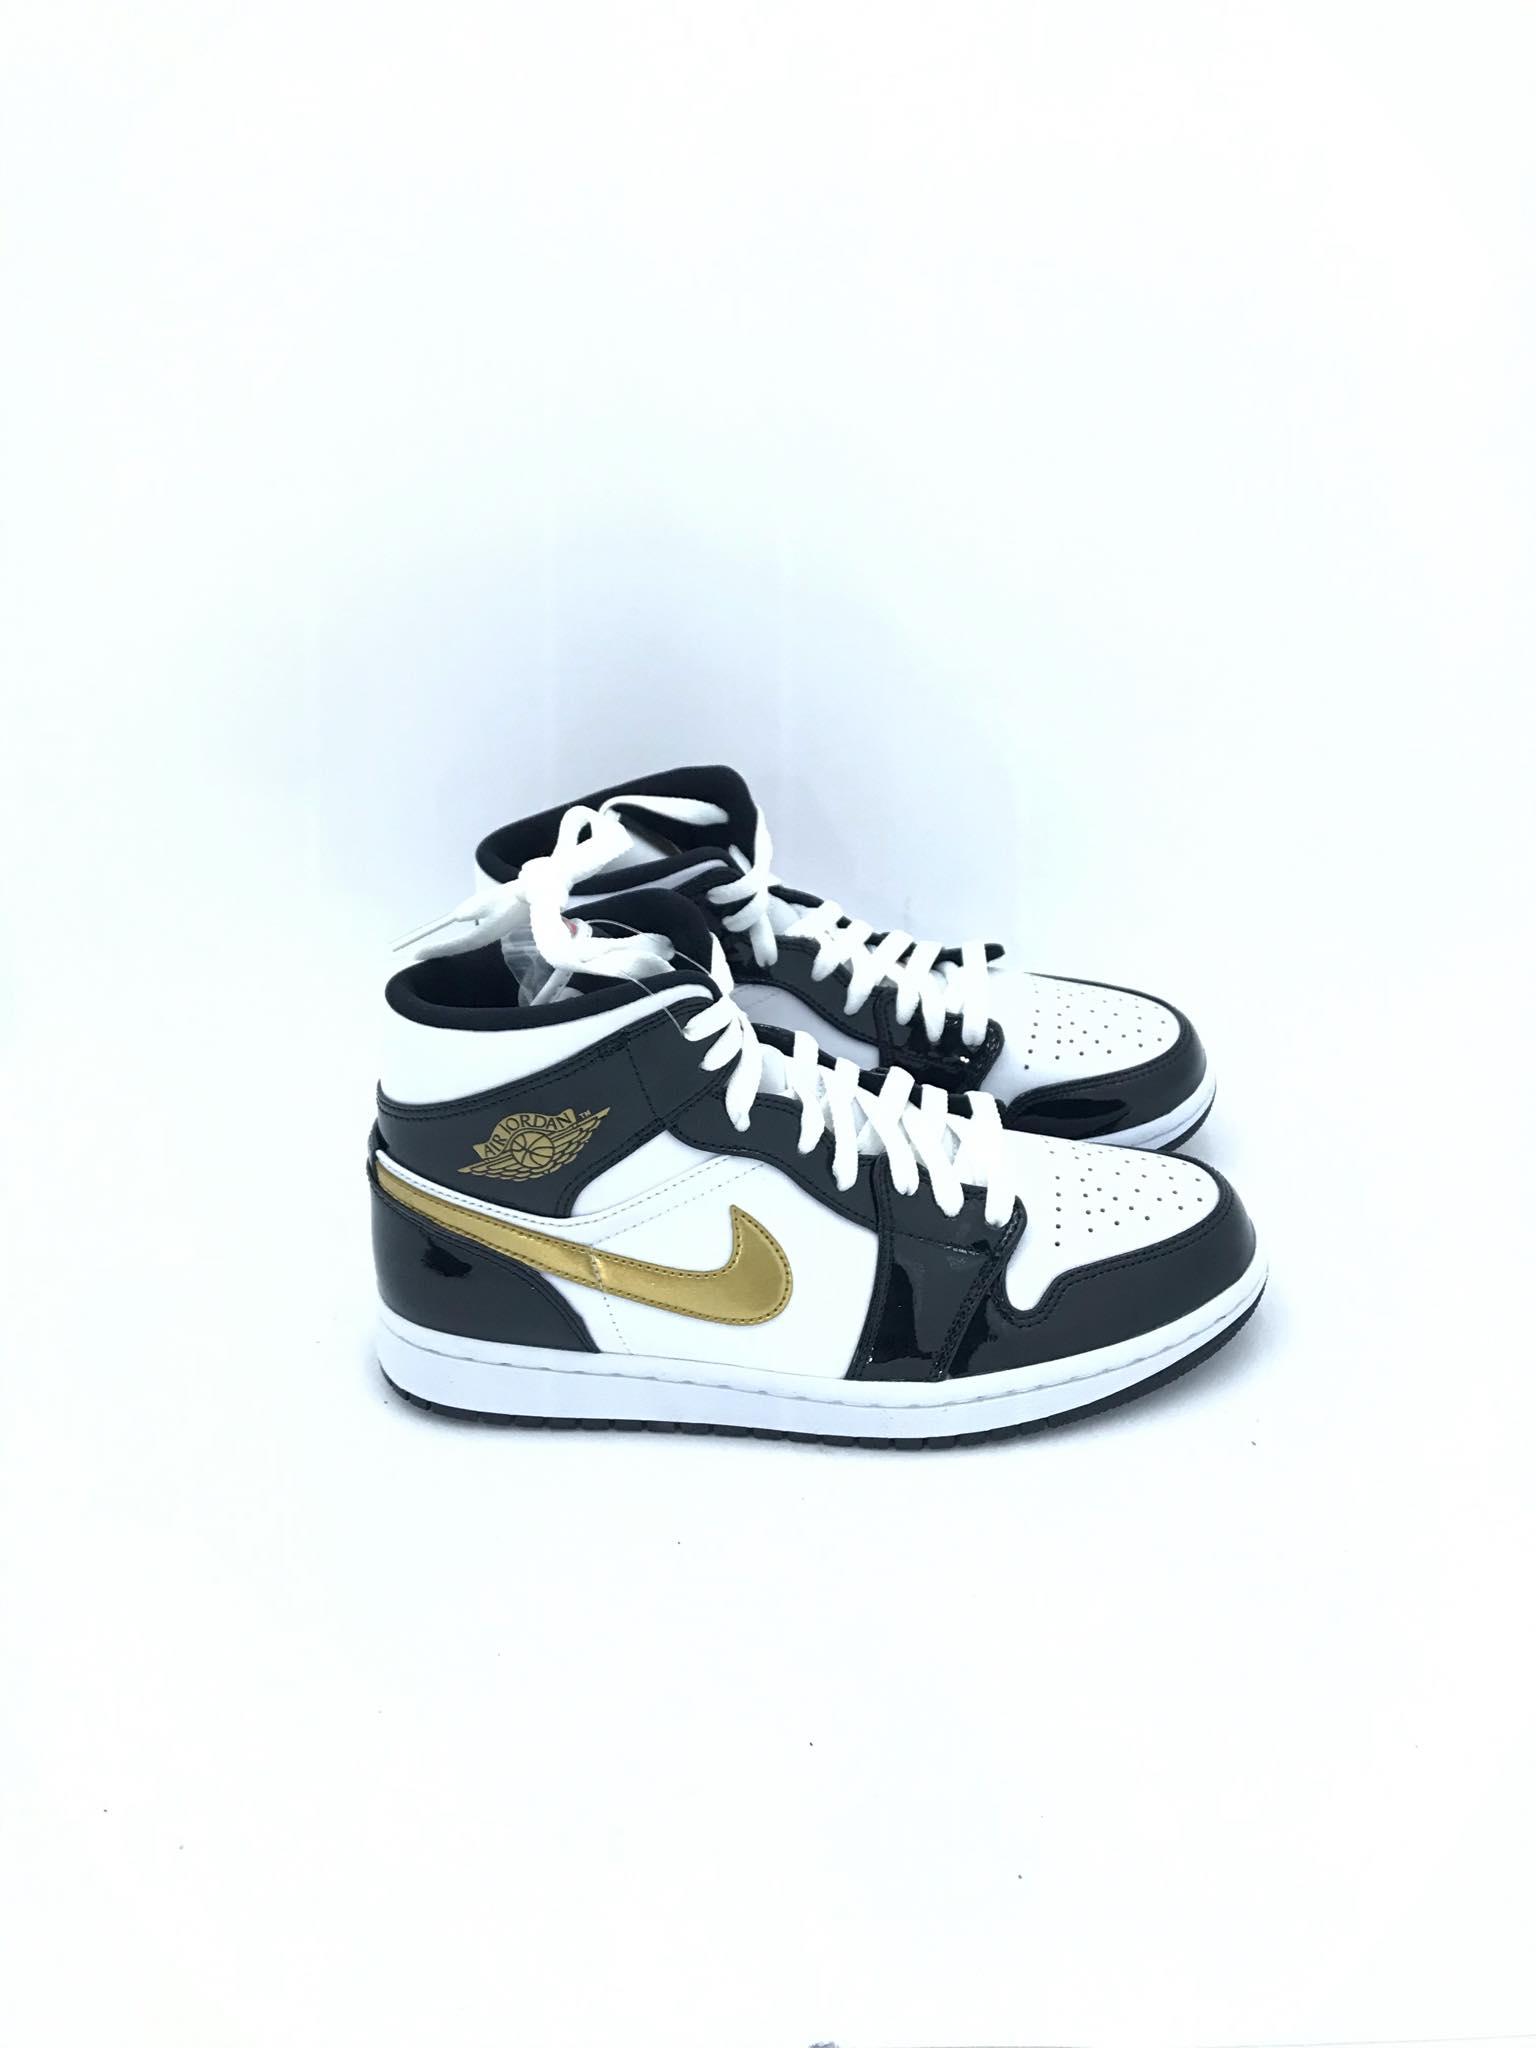 NIKE AIR JORDAN 1 MID 852542007 W.B.GOLD LIMITED | Gagliotta ...